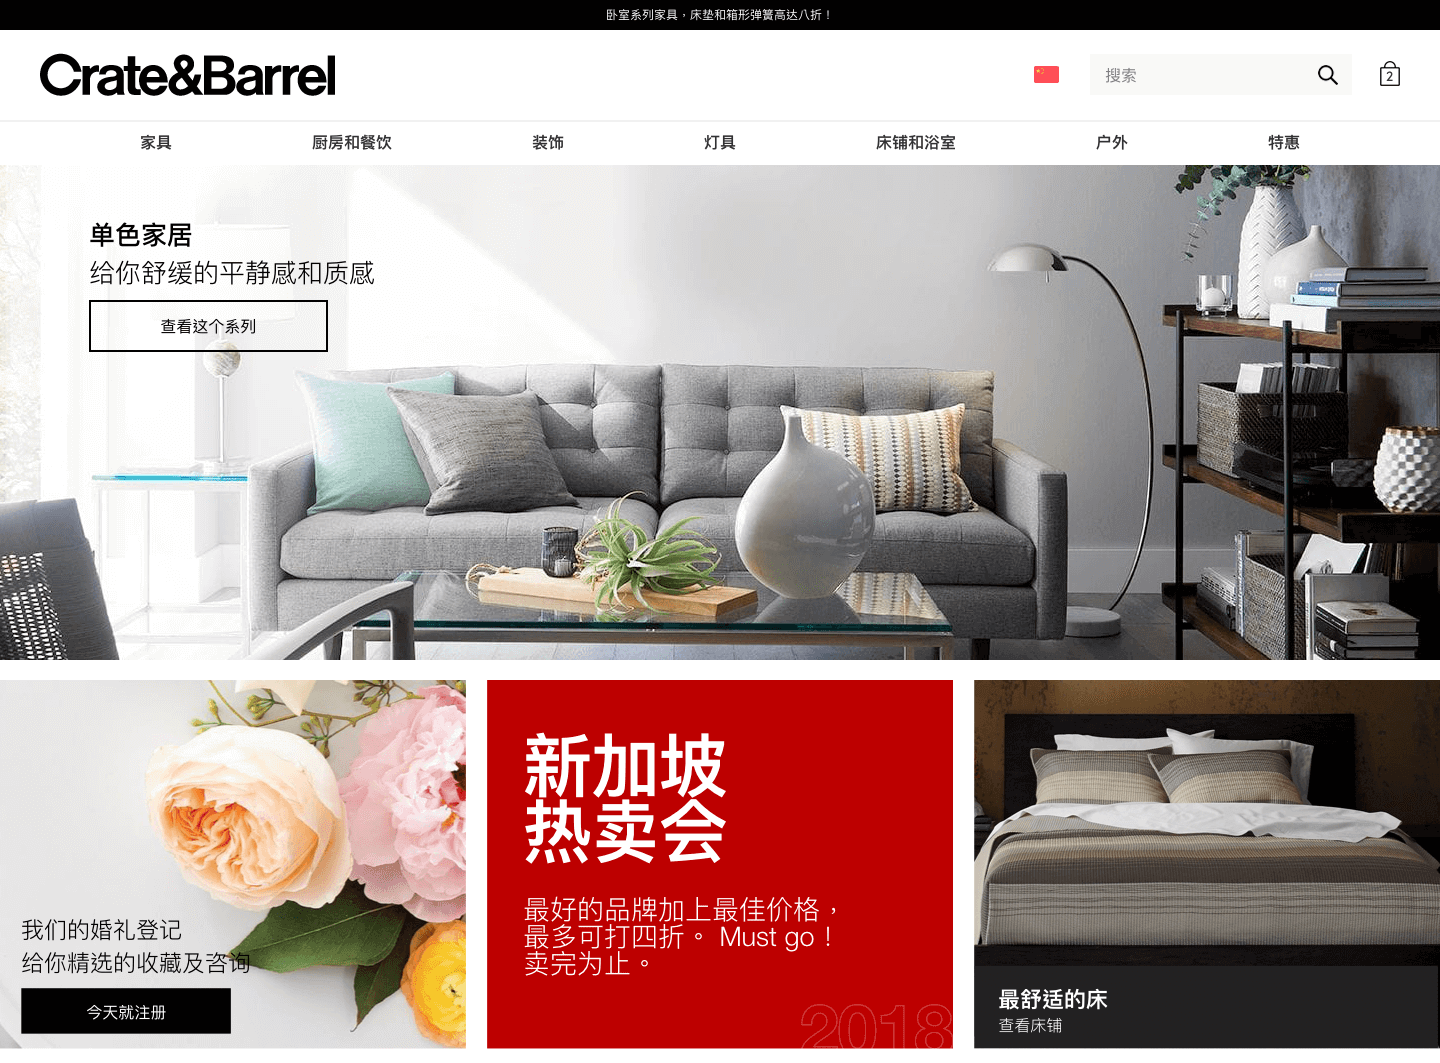 Homepage in Chinese featuring furniture and housewares